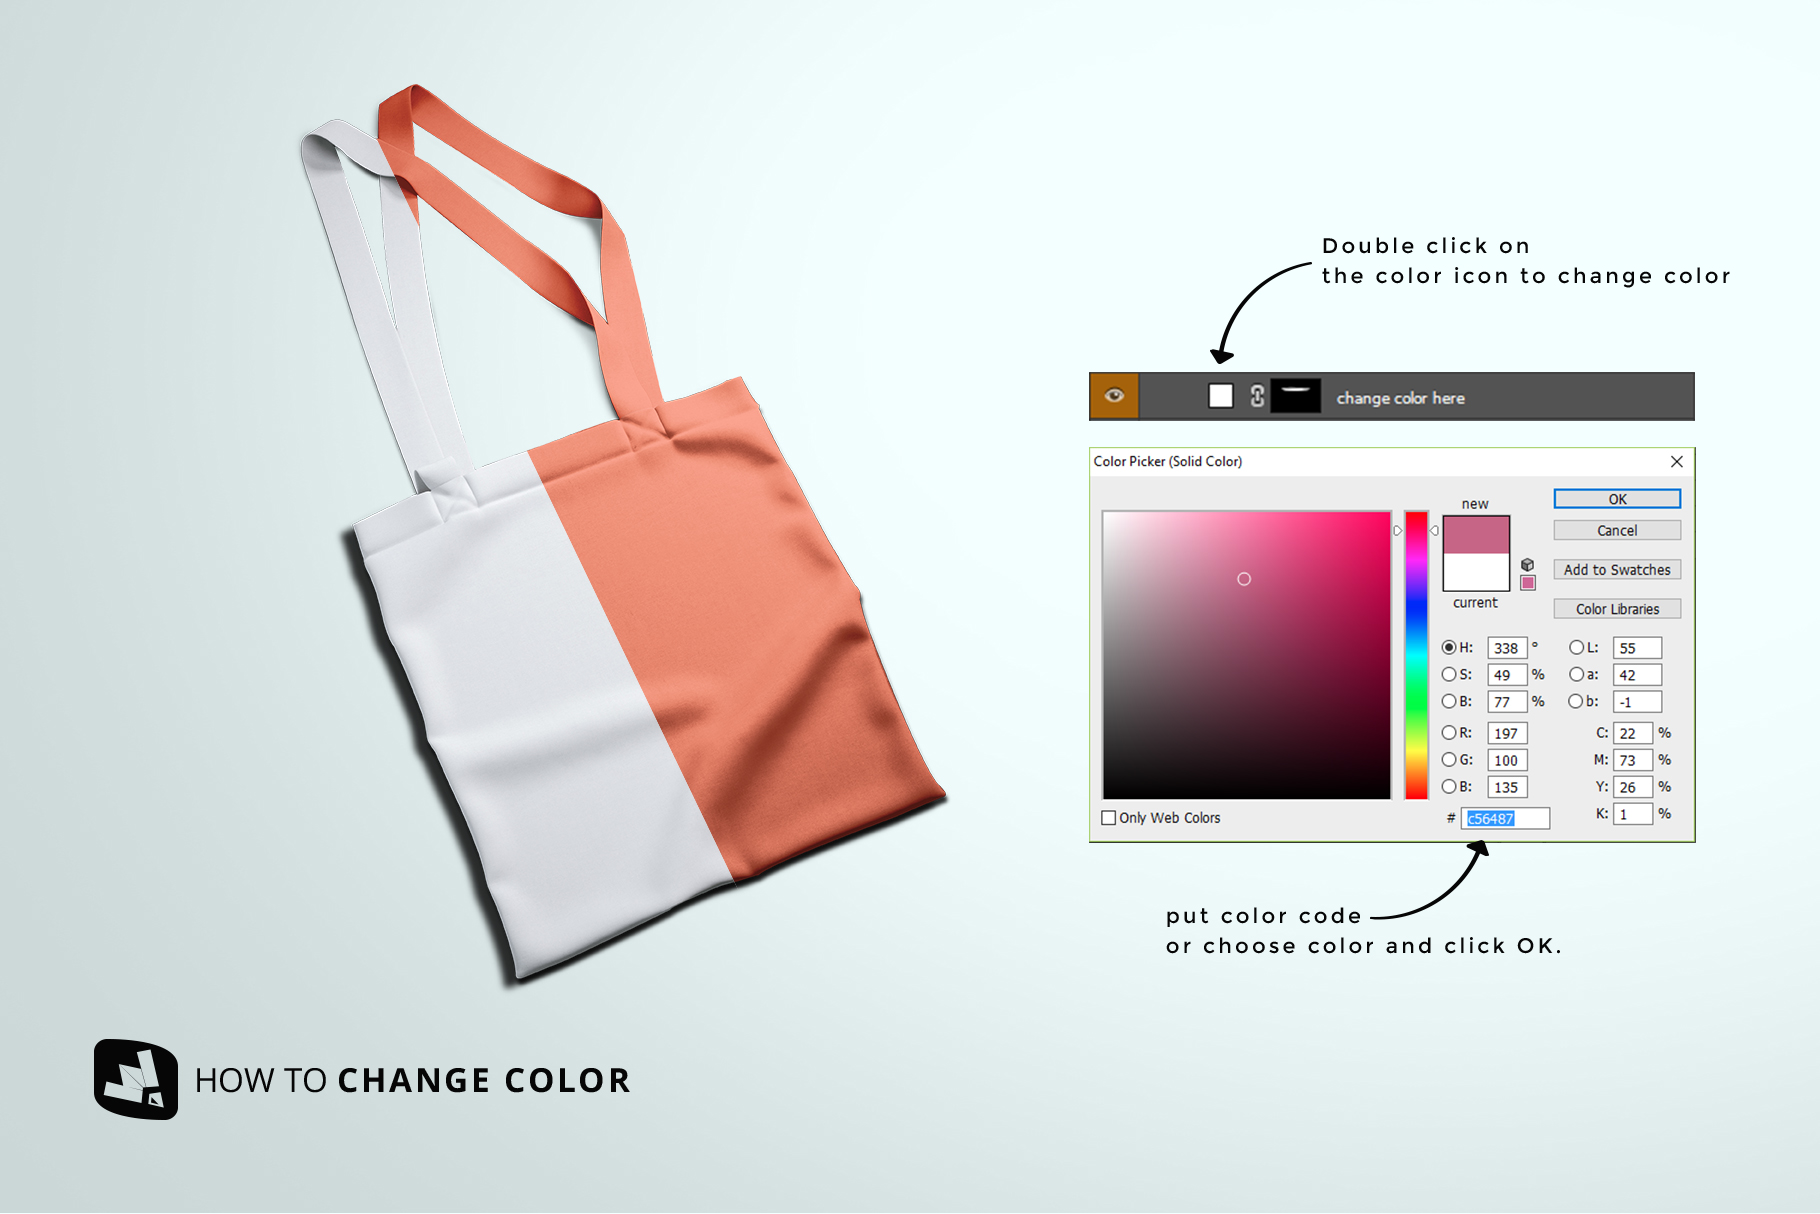 how to change color of the topview reusable cotton bag mockup